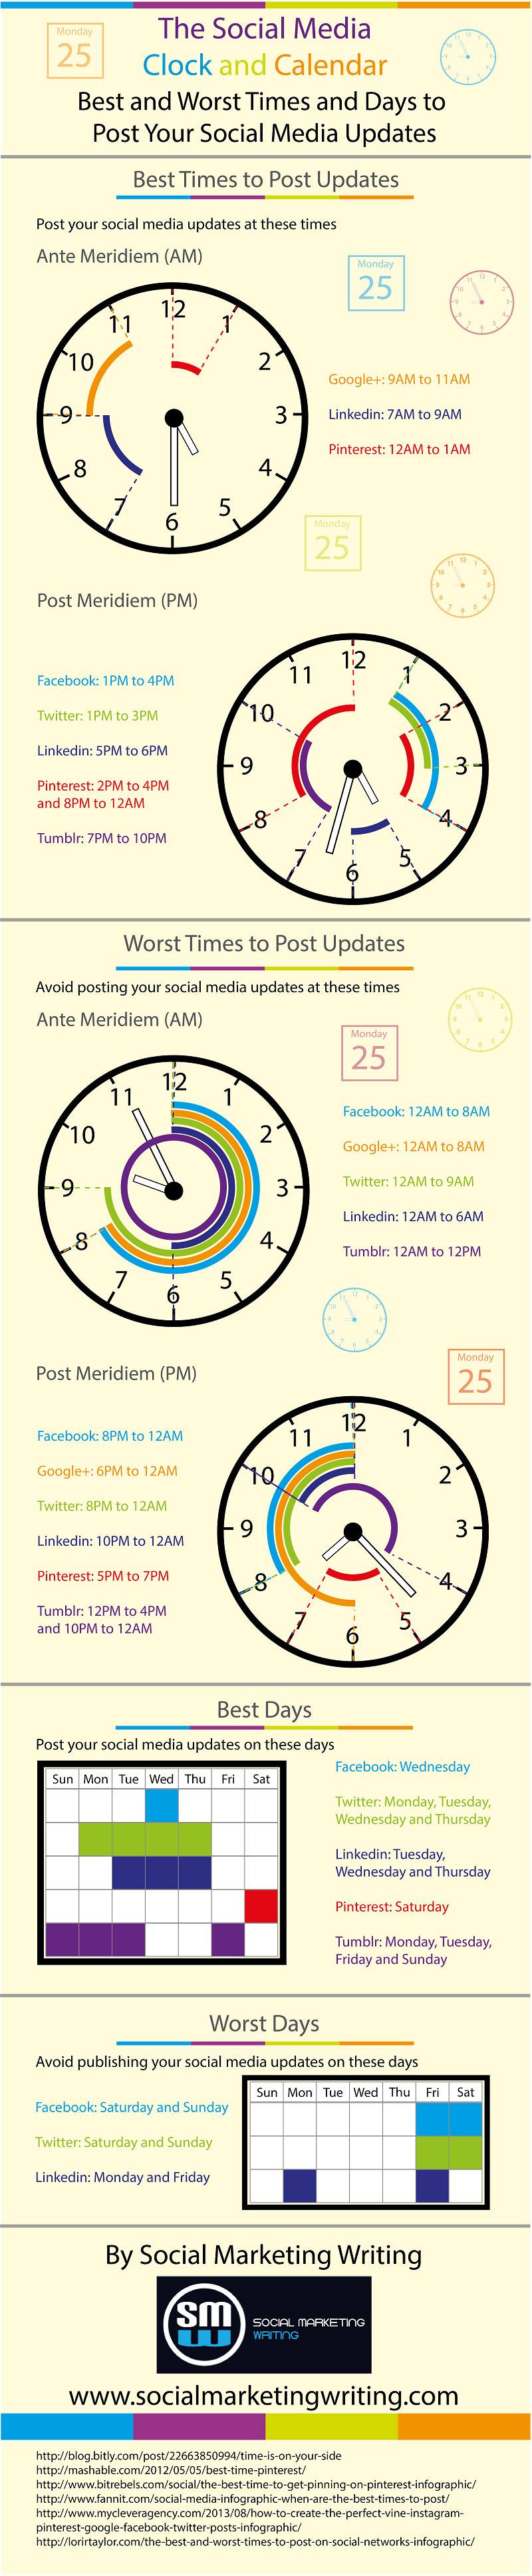 Best-and-Worst-Times-and-Days-to-Post-Your-Social-Media-Updates-Infographic